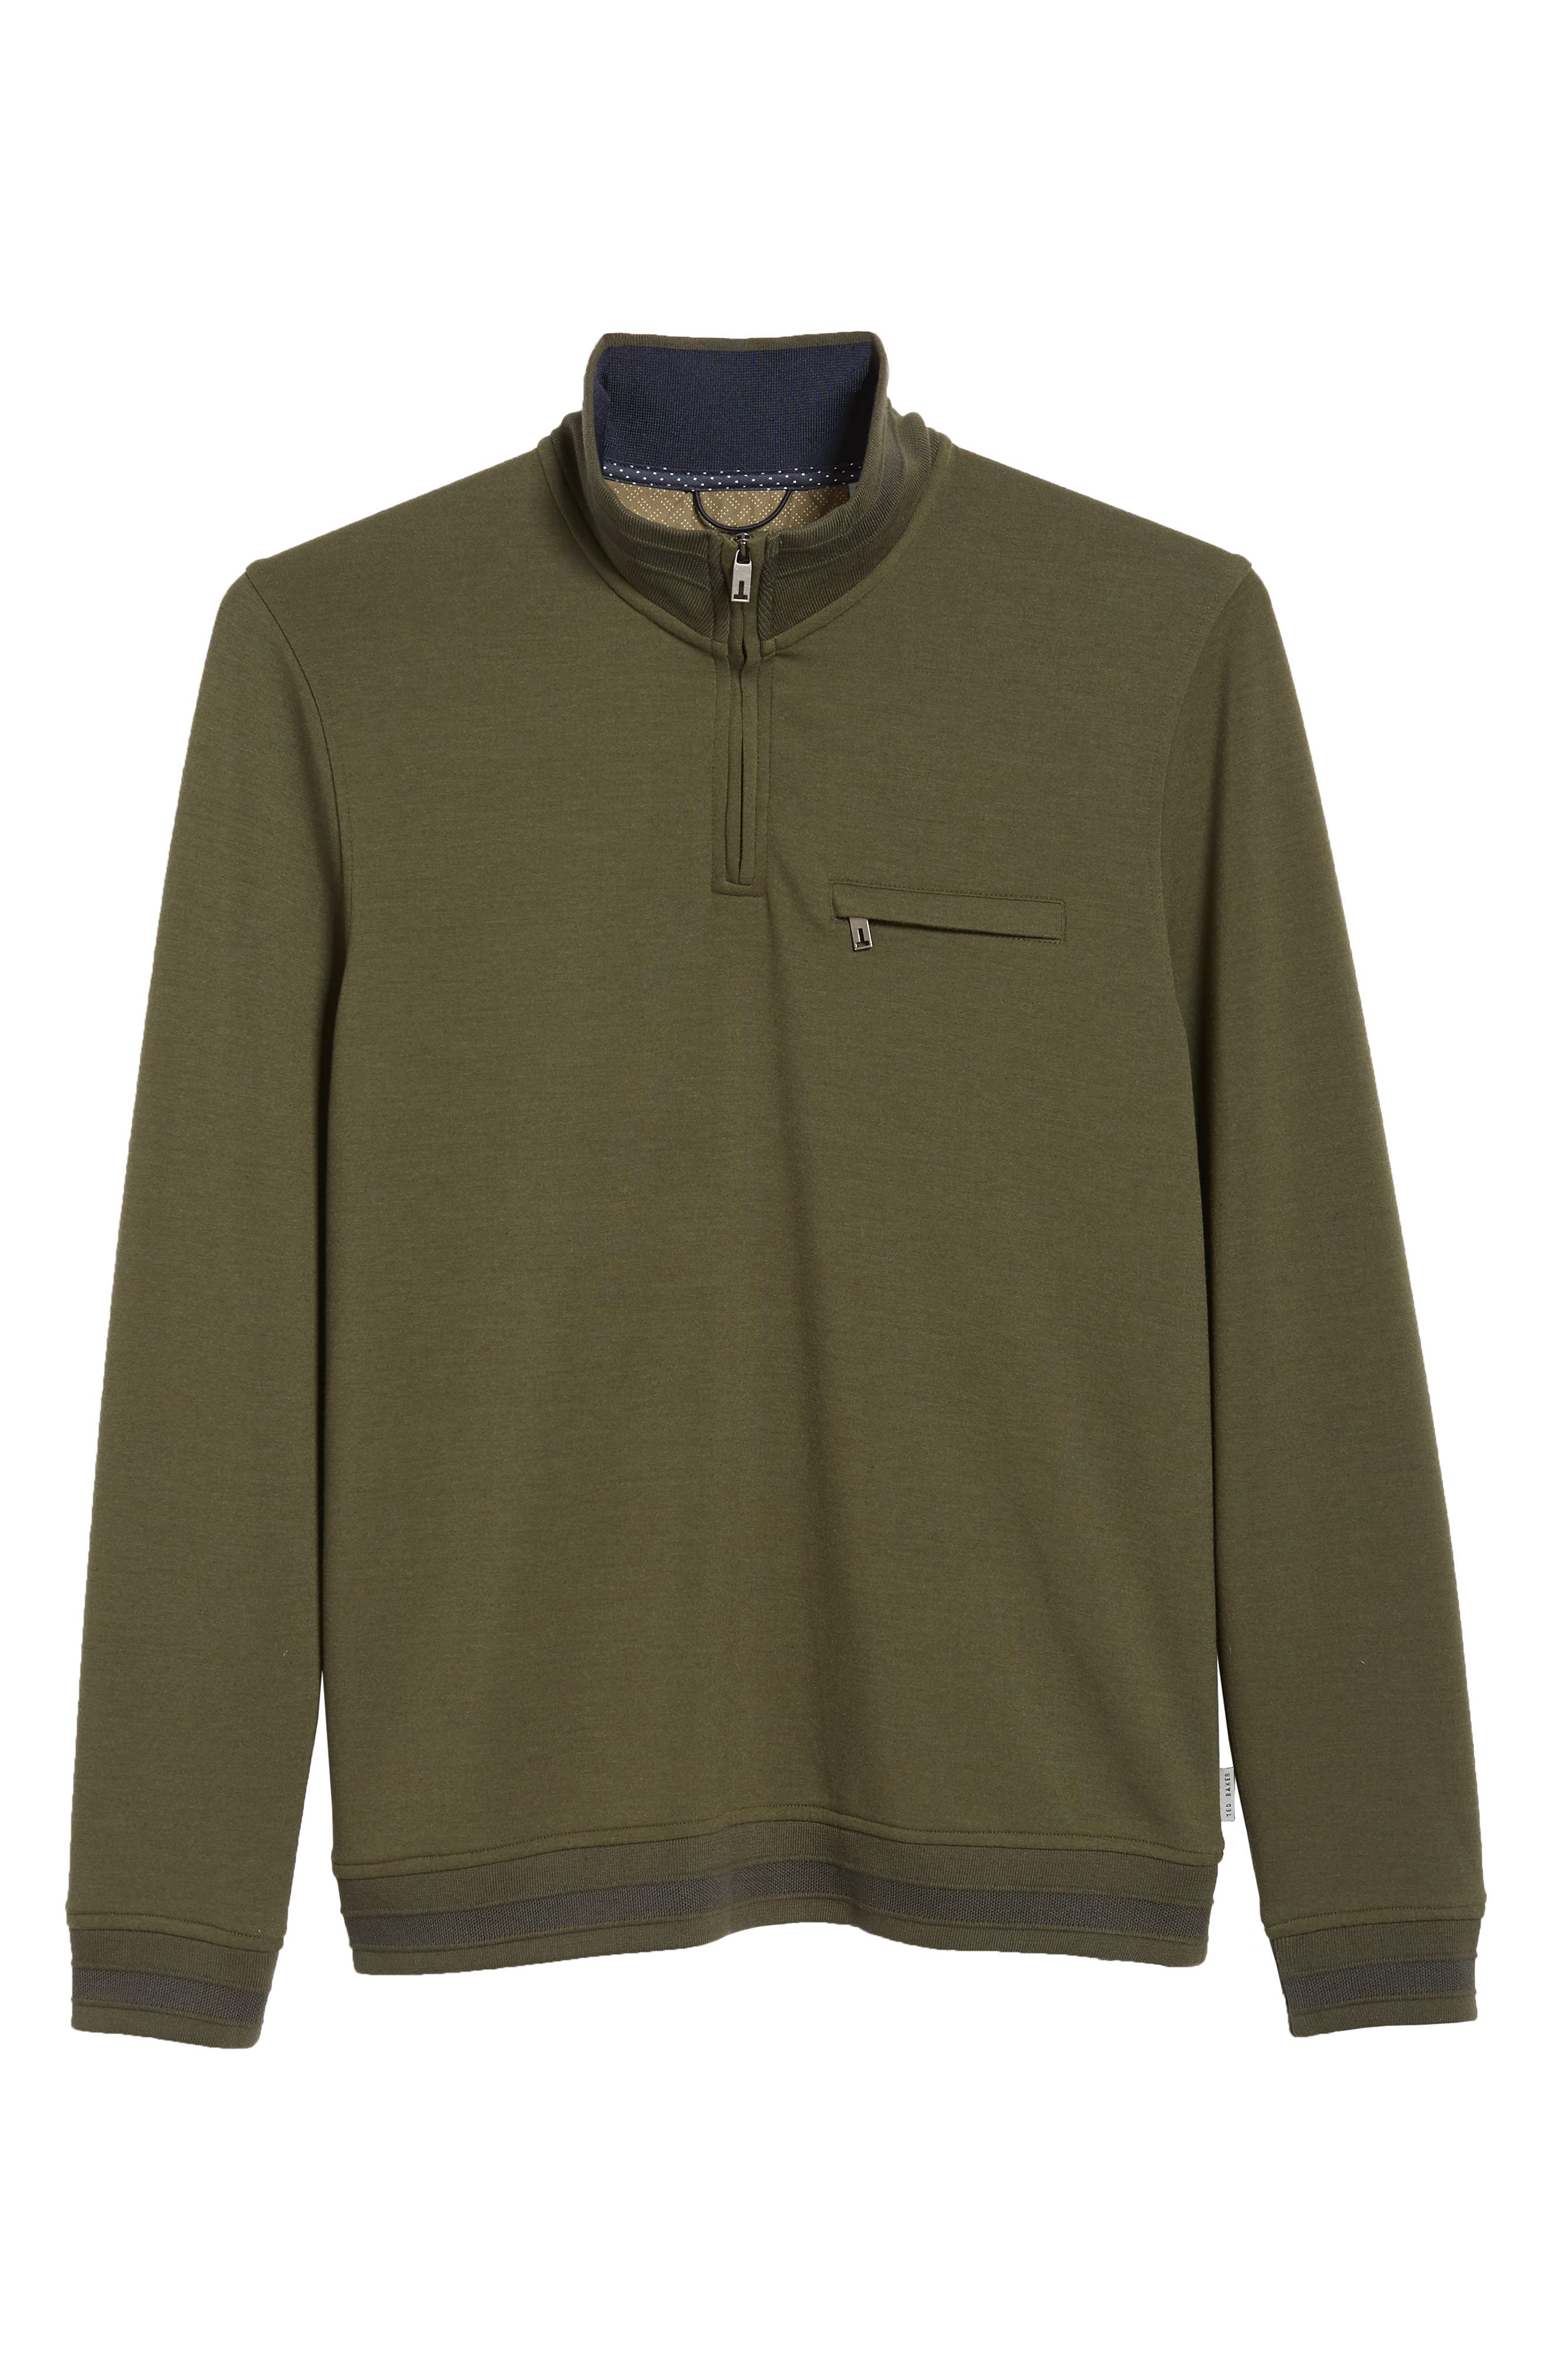 Leevit Quarter Zip Pullover,                             Alternate thumbnail 6, color,                             KHAKI